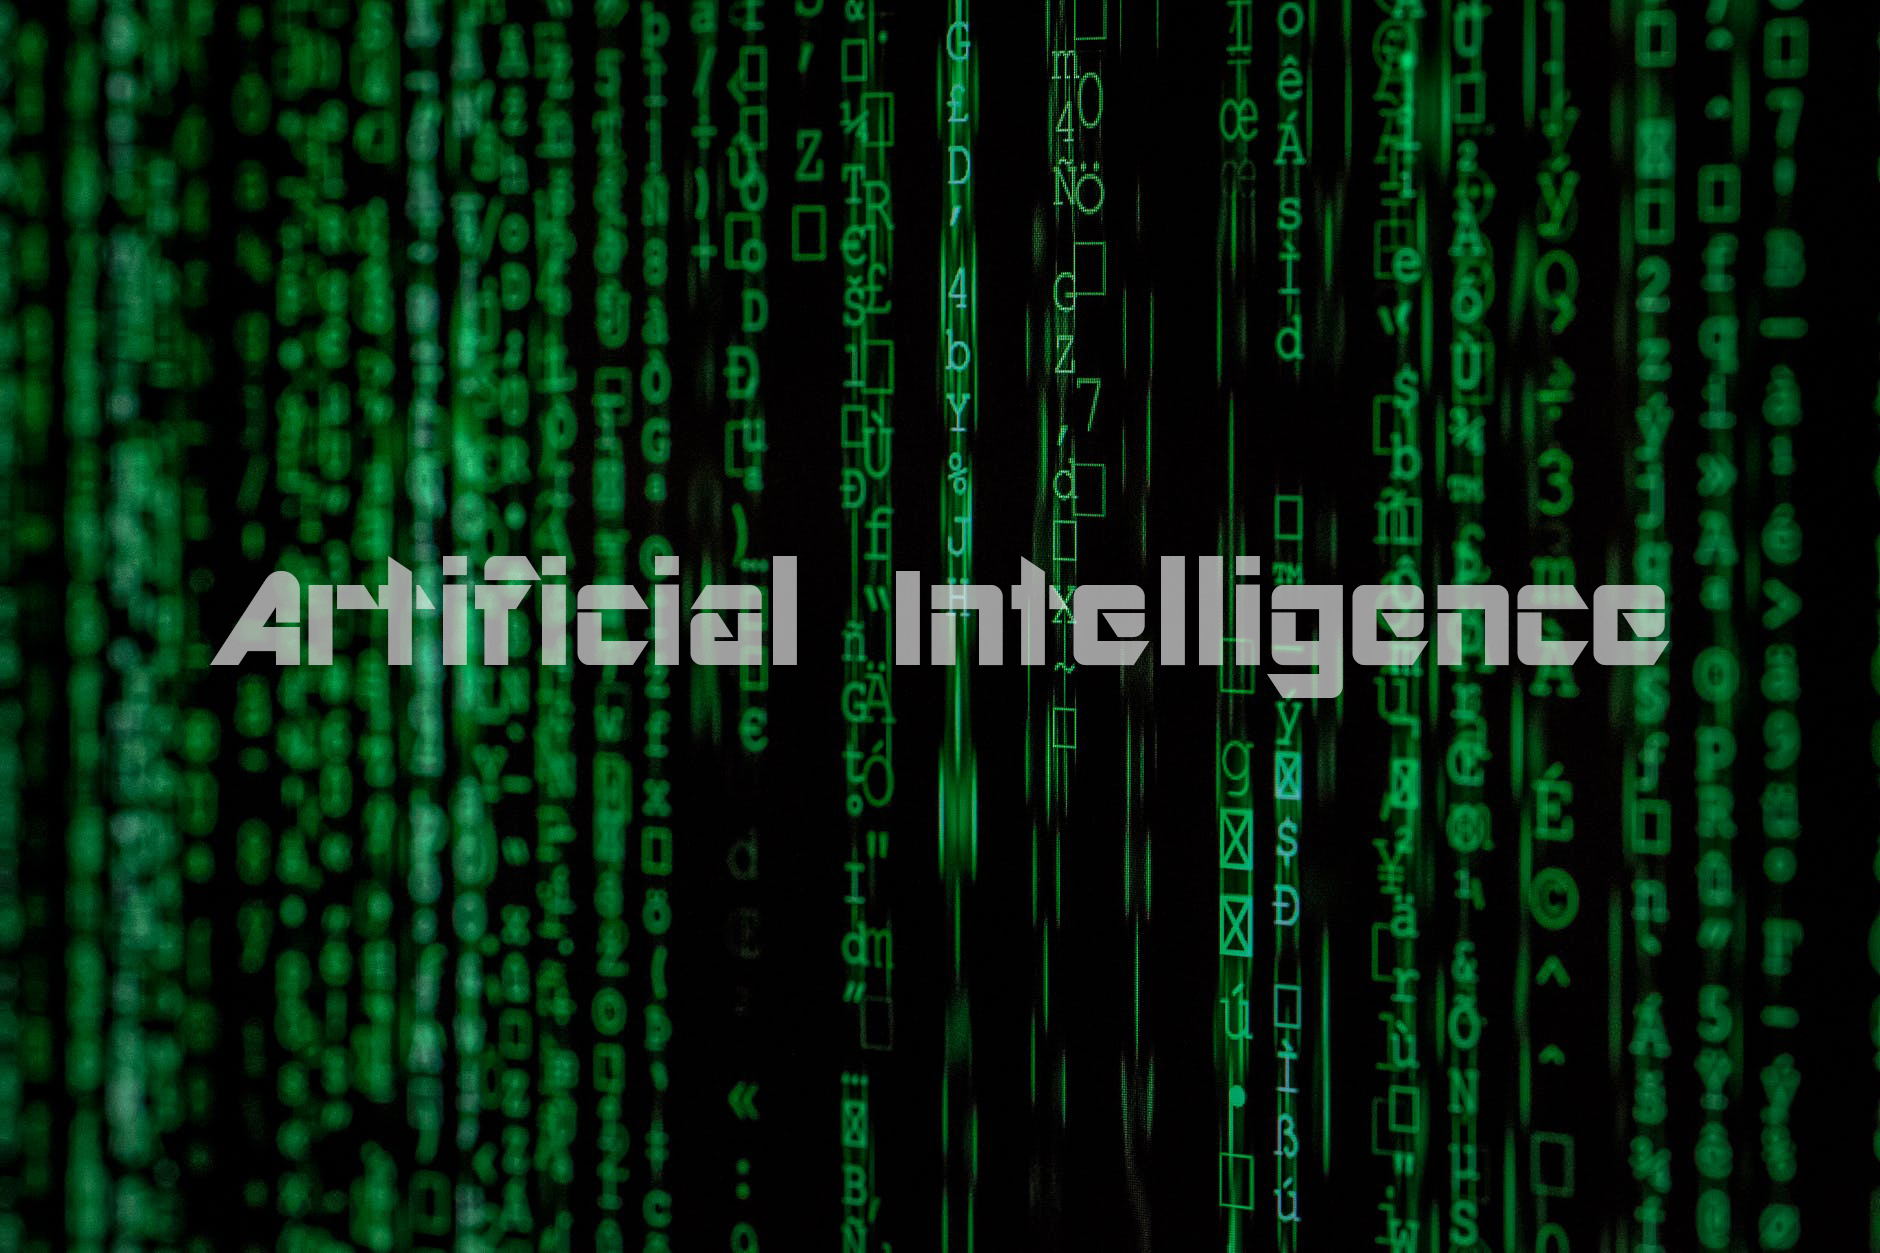 An image showing a text Artificial intelligence with Cryptic text in the background.